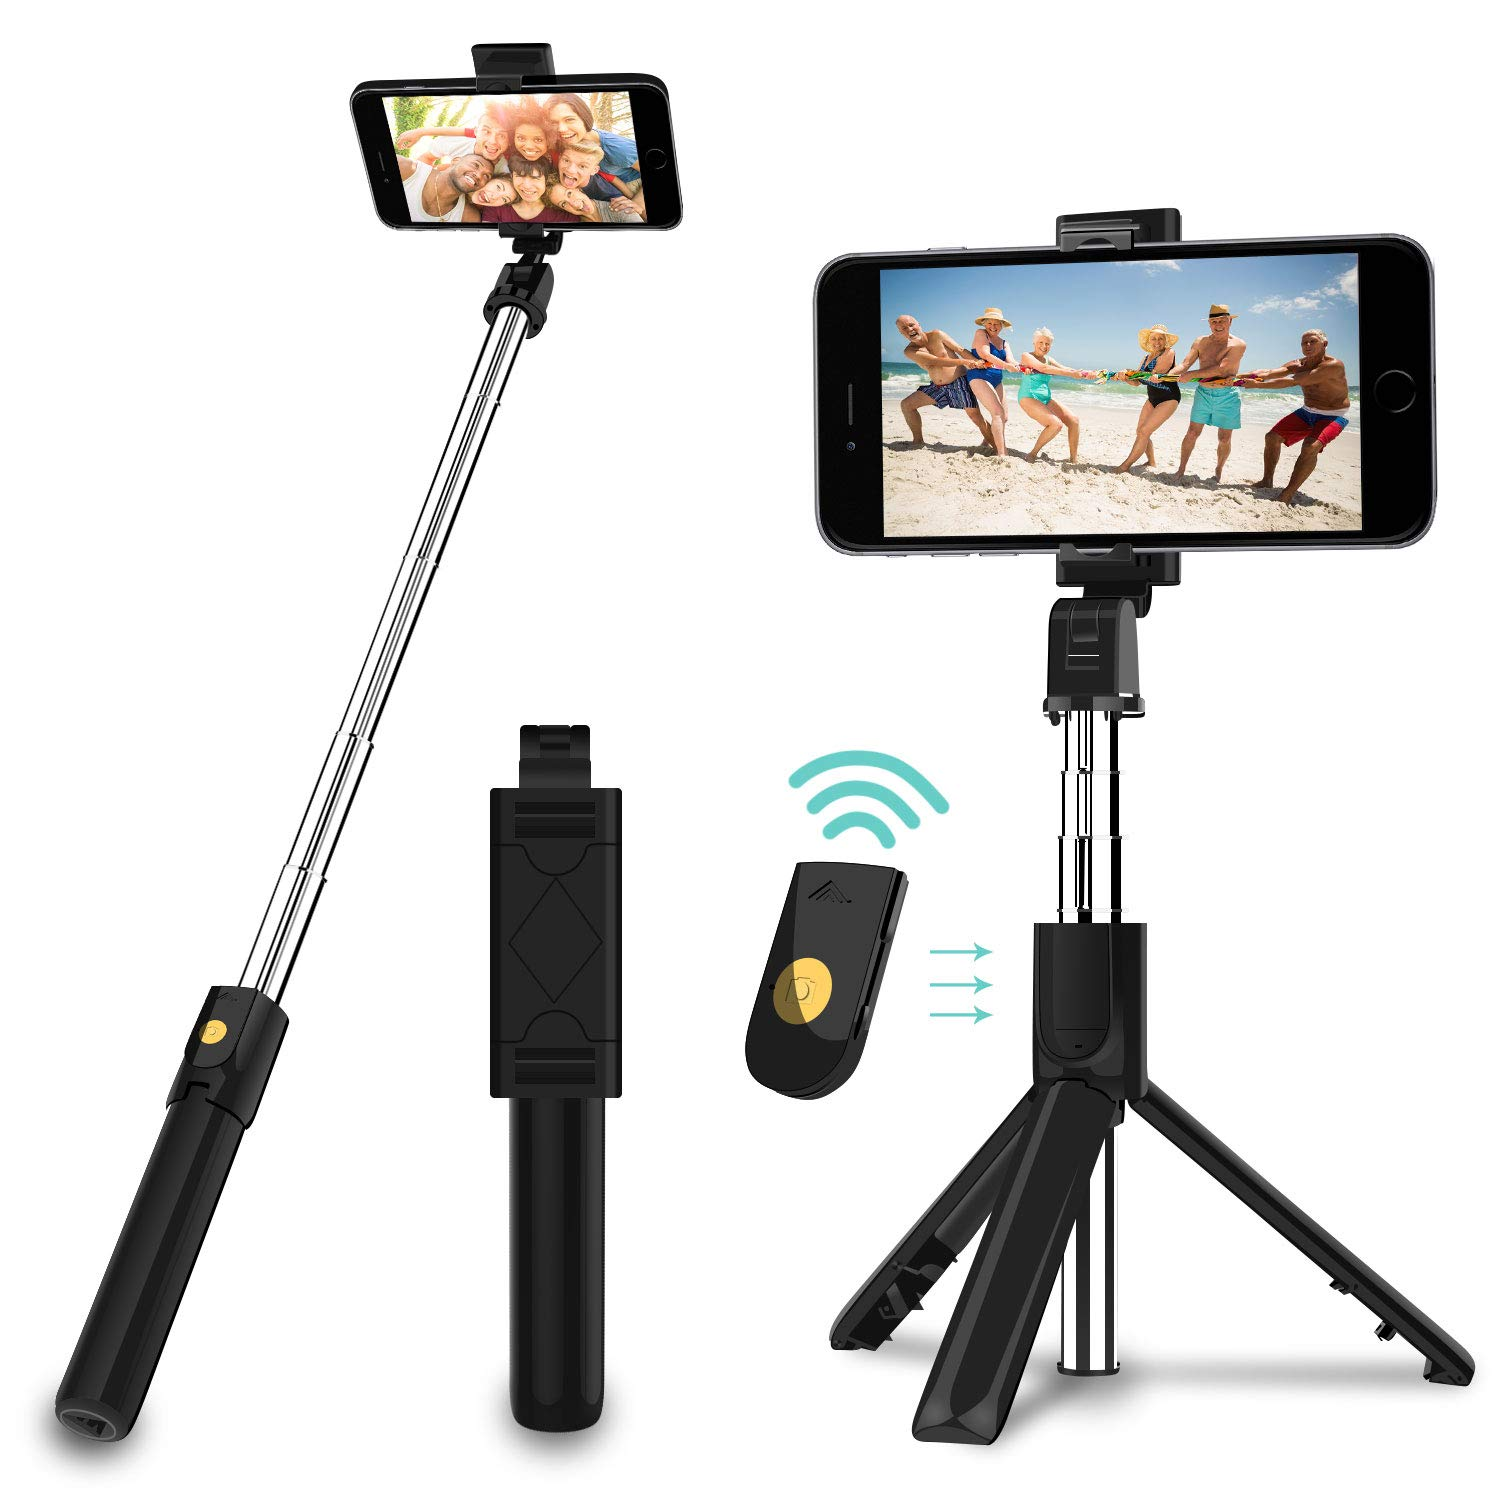 SYOSIN Selfie Stick, 3 in 1 Extendable Selfie Stick Tripod with Detachable Bluetooth Wireless Remote Phone Holder for iPhone Xs/iPhone 8/iPhone 7/7 Plus, Galaxy S10/S9 Plus/S8/Note8, LG, Google, More by SYOSIN